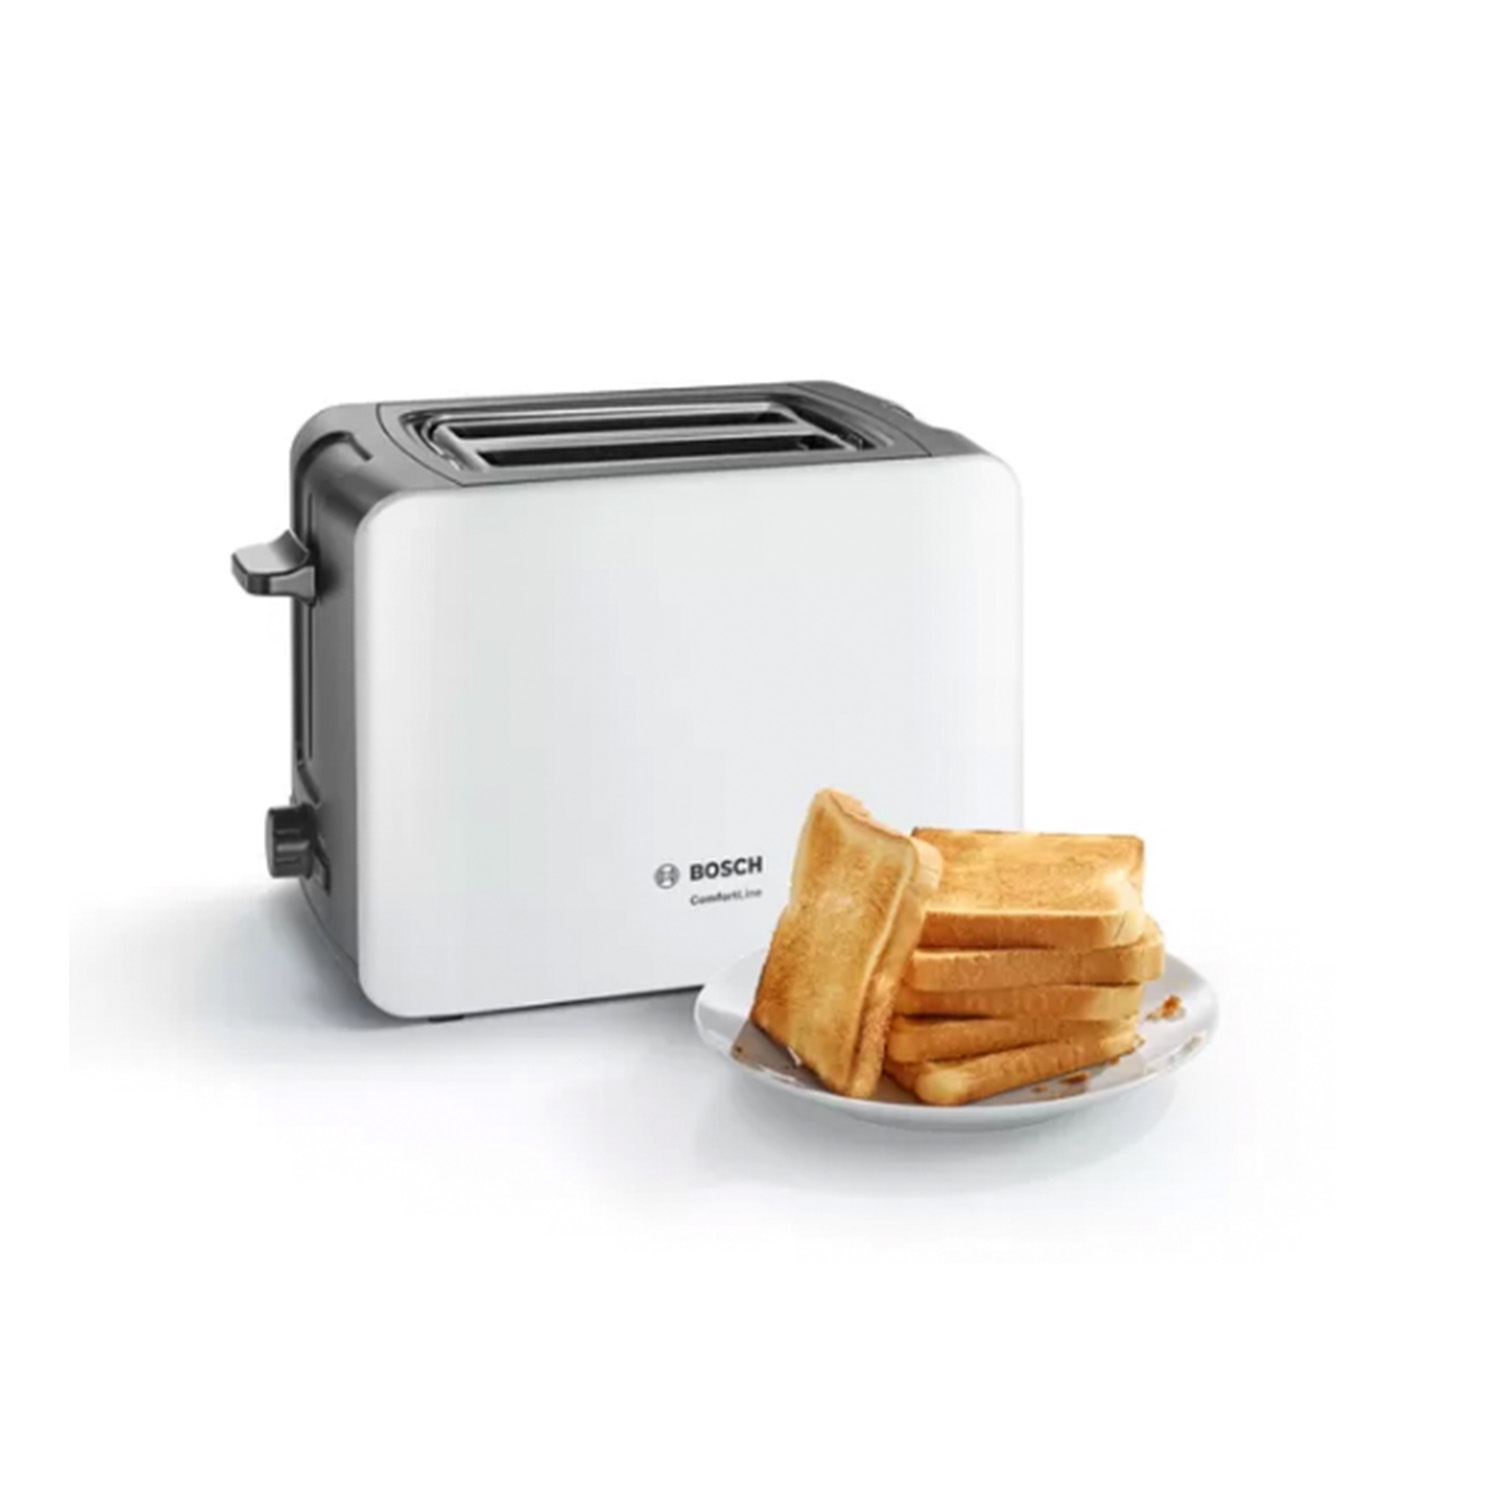 Bosch 2 Slice Toaster - White - 0